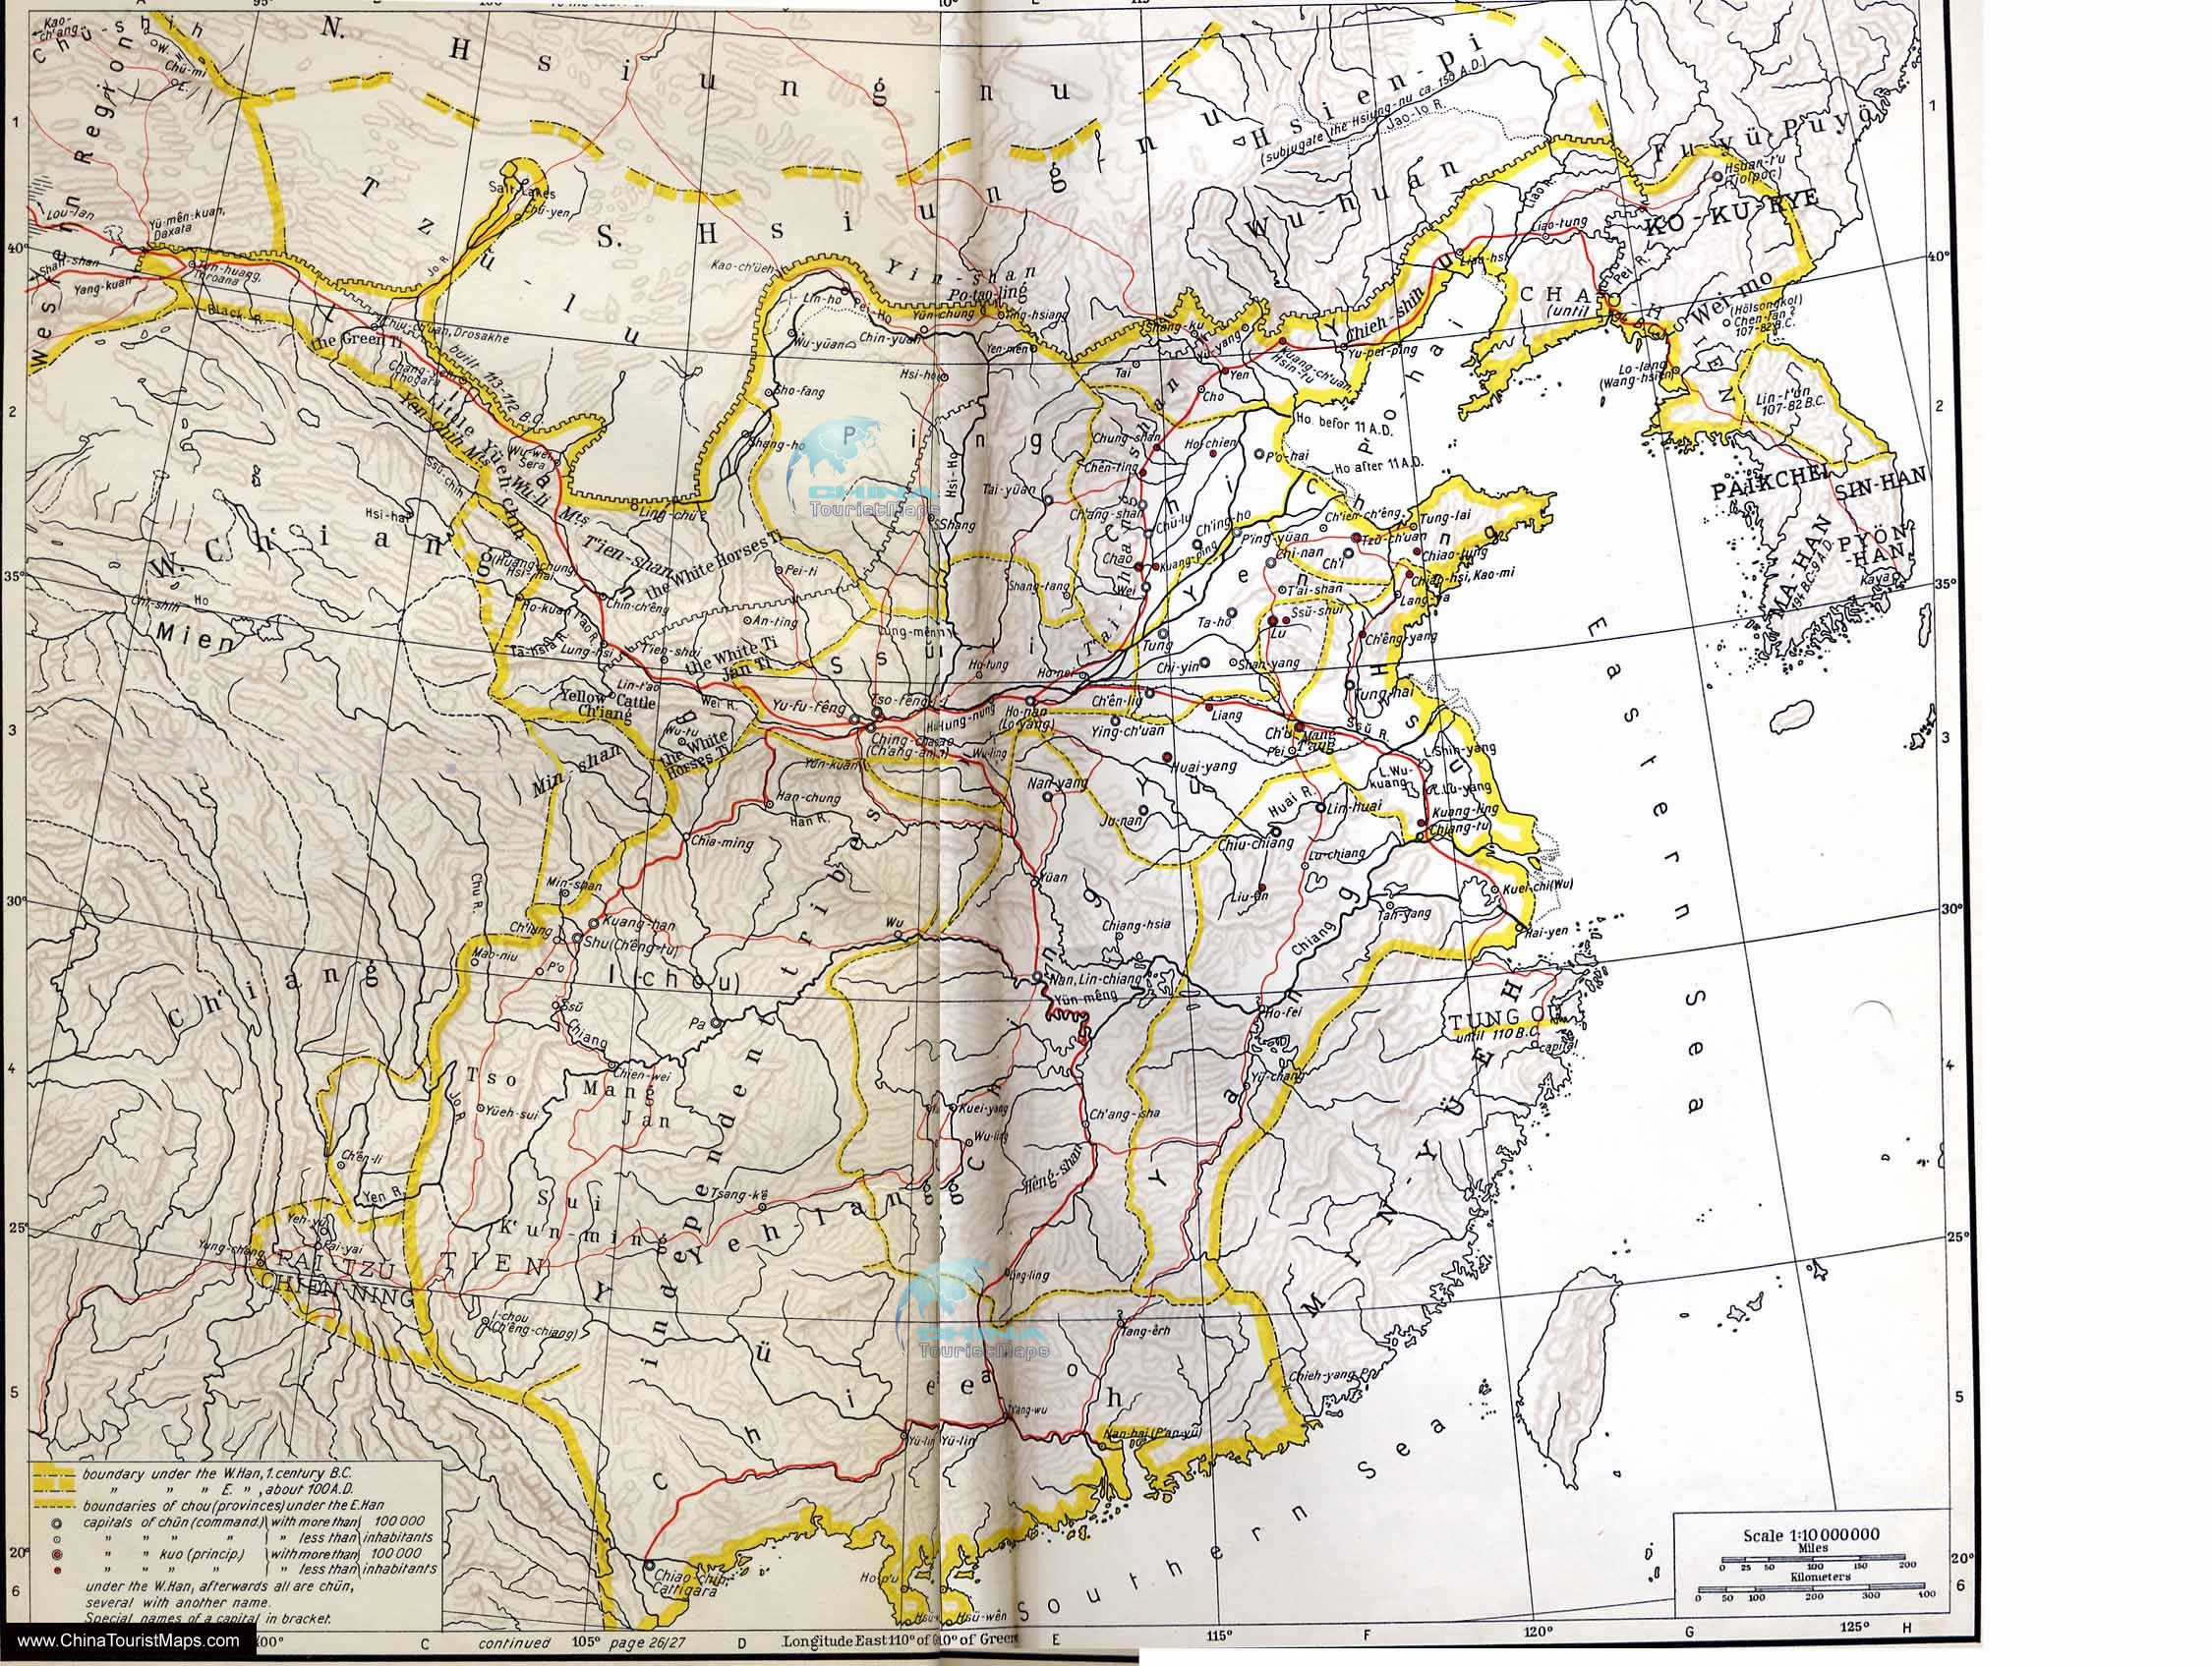 Han Dynasty Map, Map of Han Dynasty, Ancient China Map on map of china with cities, outline map of china, map of mesoamerica, map of silk road, map of china provinces, map of japan, map of india, topographic map of china, map of buddhism, the map of china, world map of china, map of early china, old map of china, map of modern china, map of middle east, blank map of china, physical map of china, large map of china, map of the indus valley, map of persia,